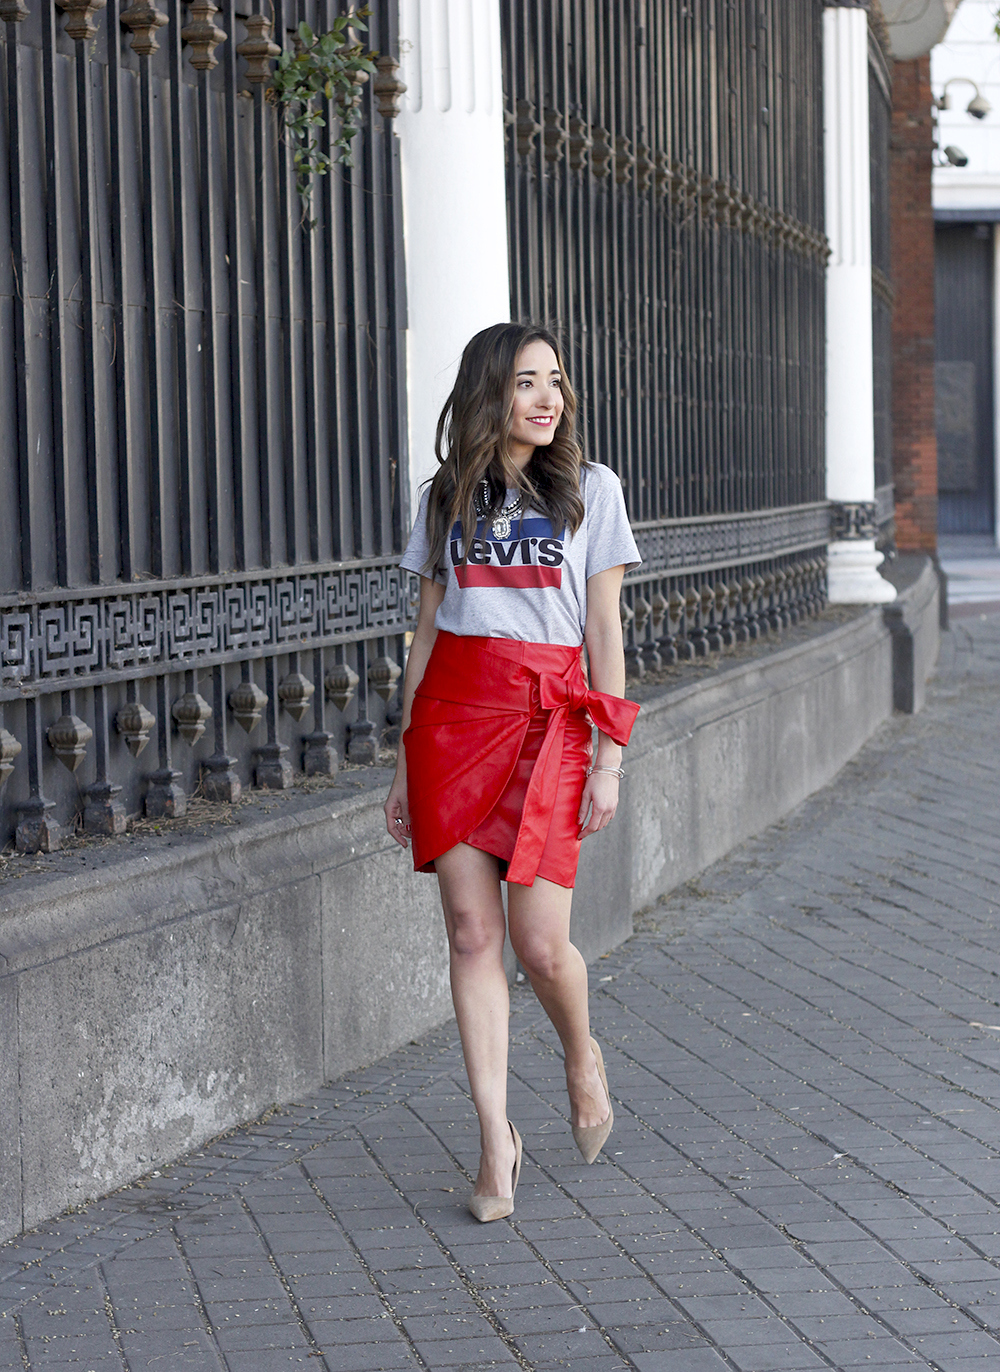 red leather skirt uterqüe Levi's T-Shirt nude heels outfit style fashion spring12